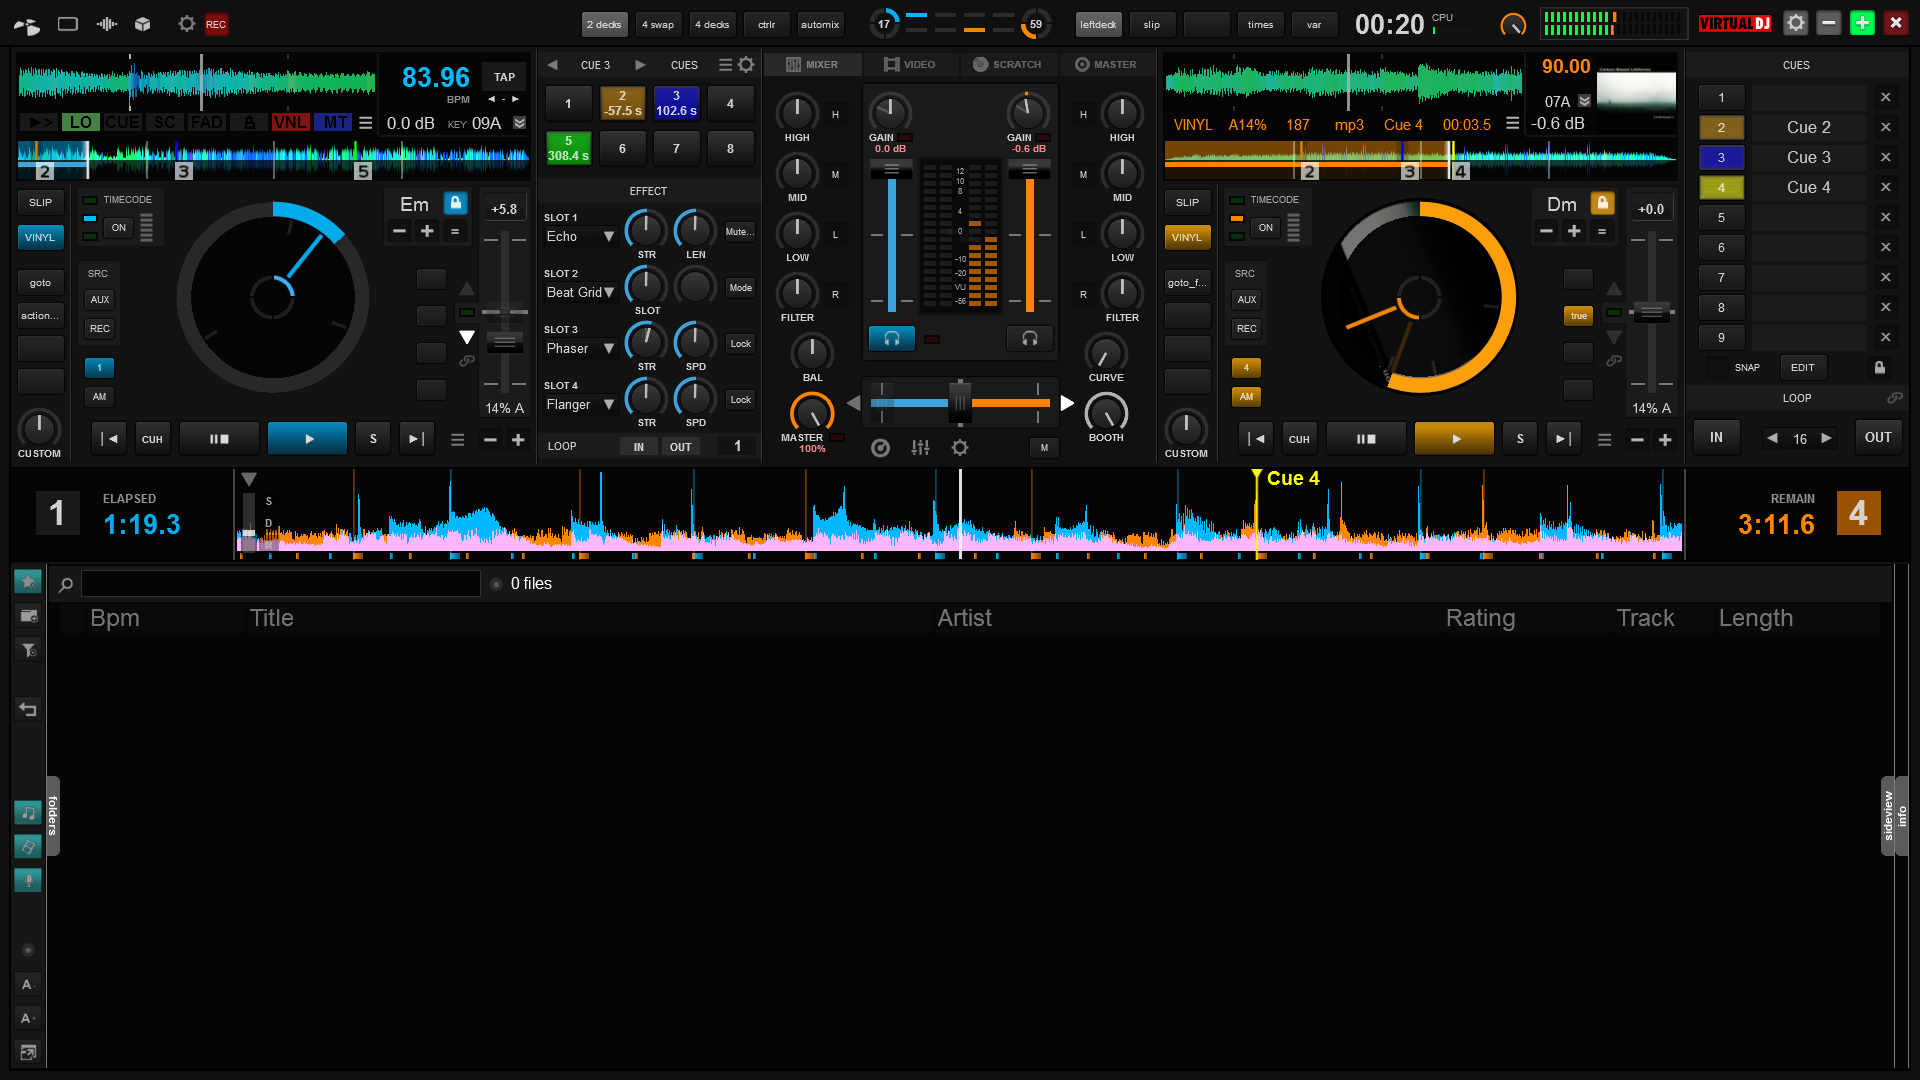 Download plugin virtual dj 8 pro download